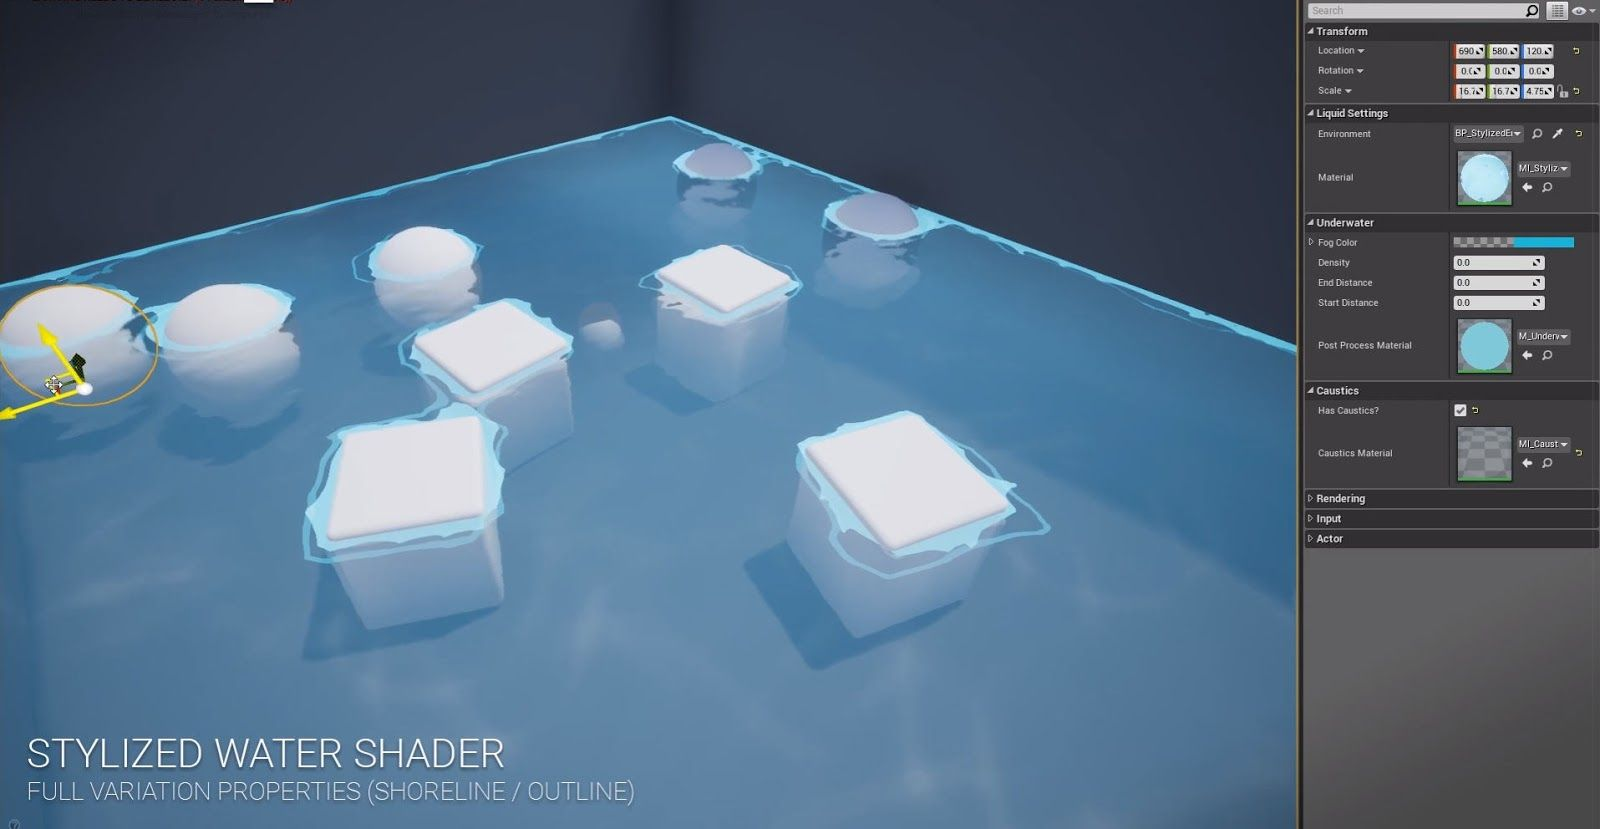 Stylized Water Shader for Unreal Engine 4 | CG Daily News